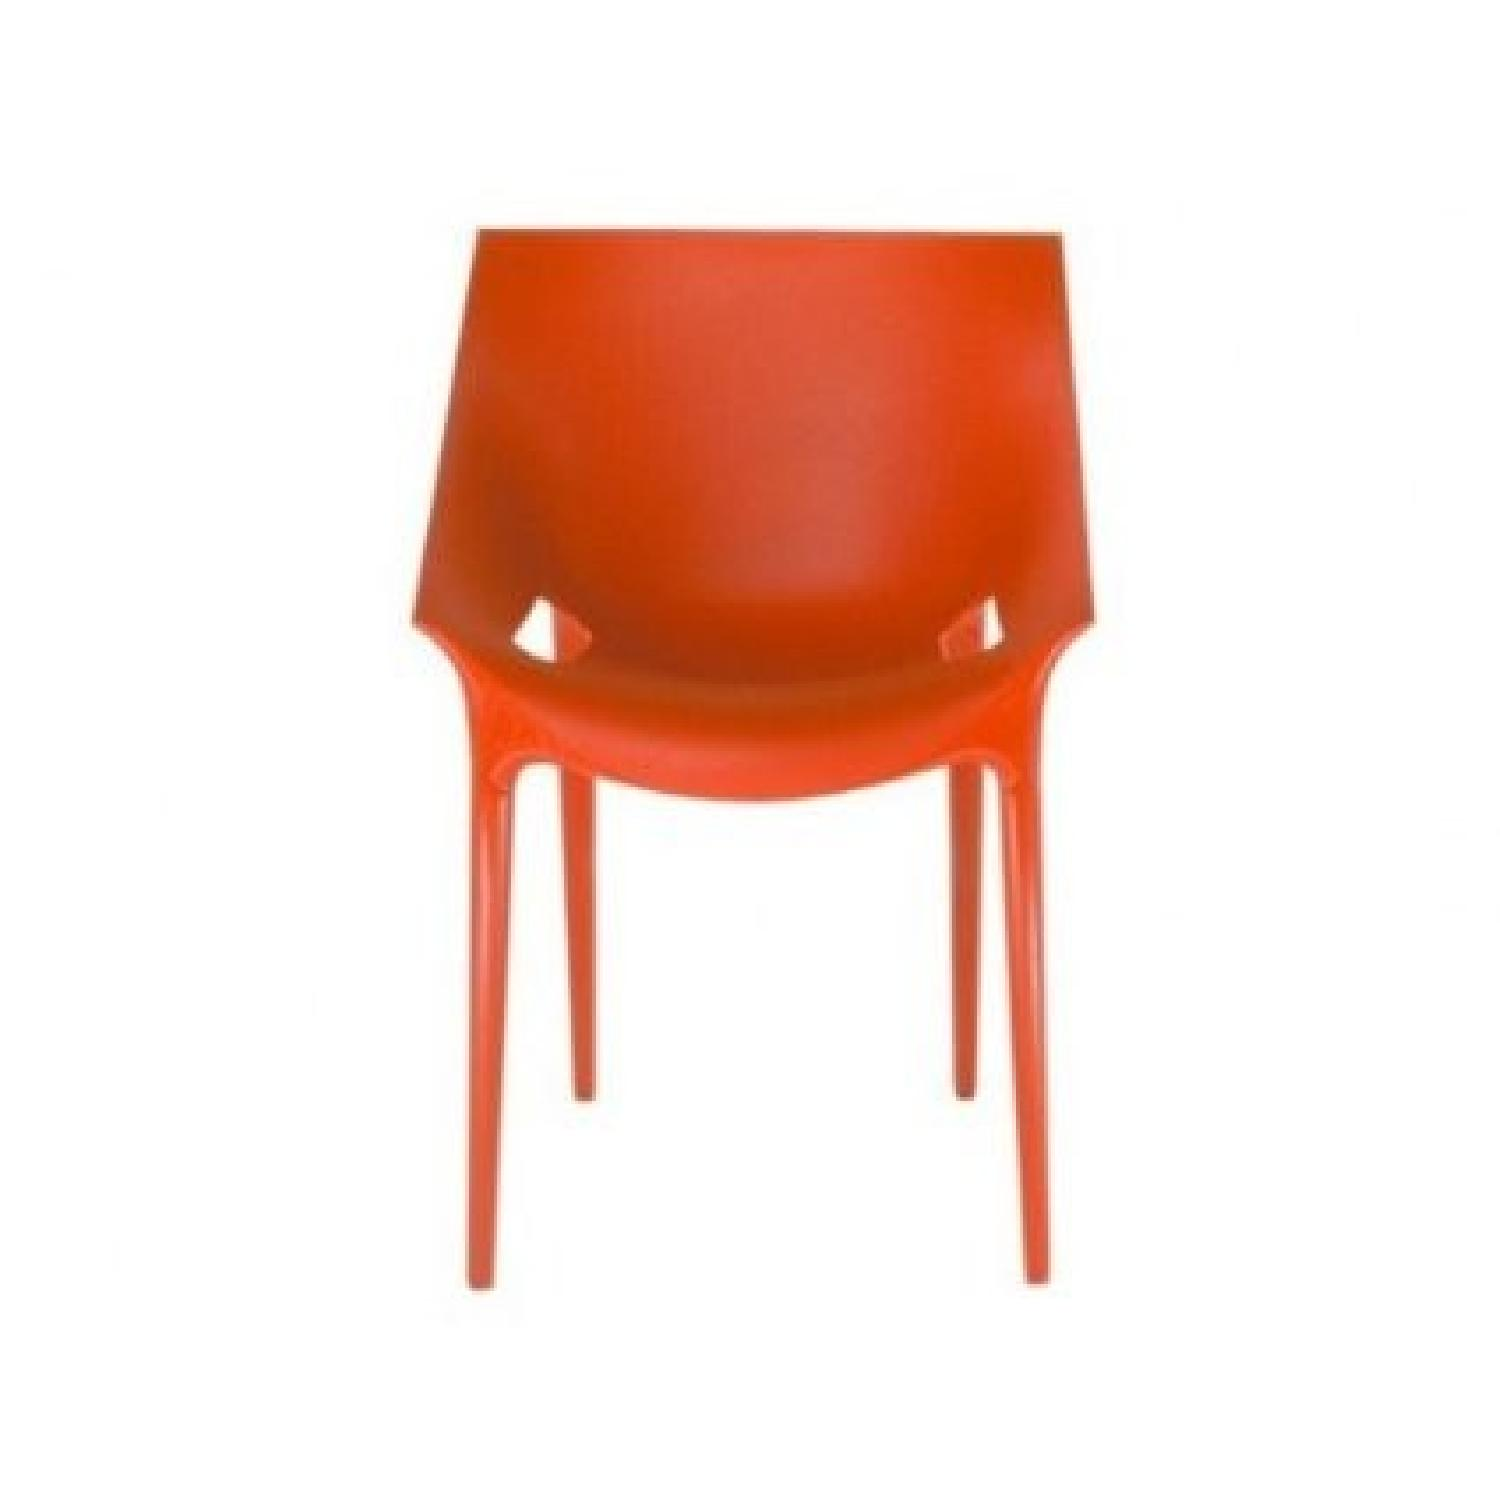 Kartell Dr. Yes Chair by Philippe Starck in Matte Orange Red - image-1